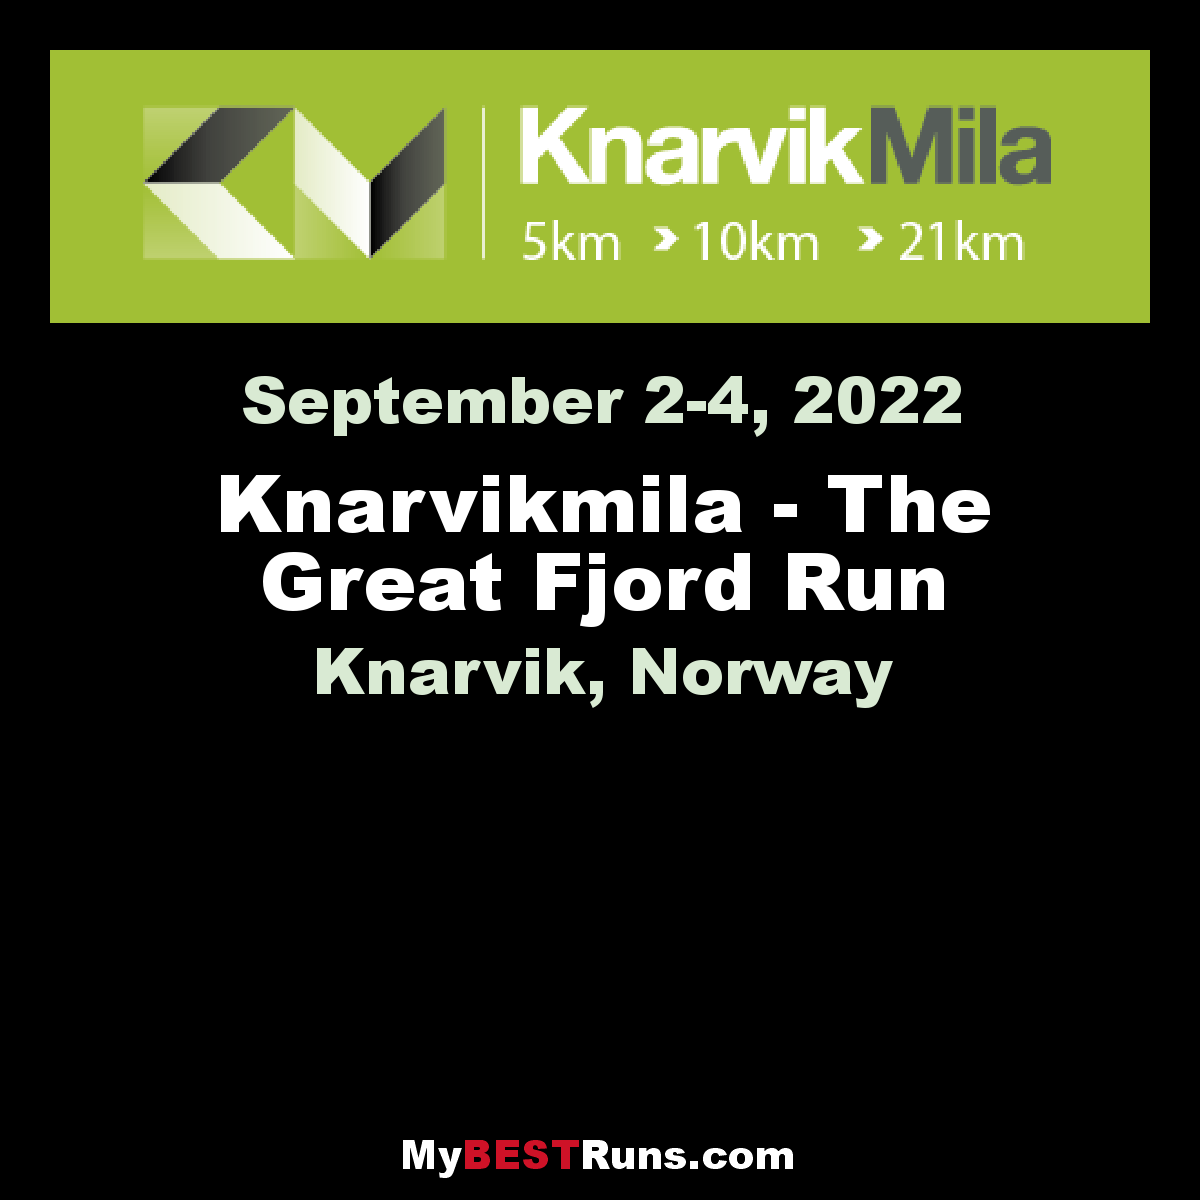 Knarvikmila - The Great Fjord Run